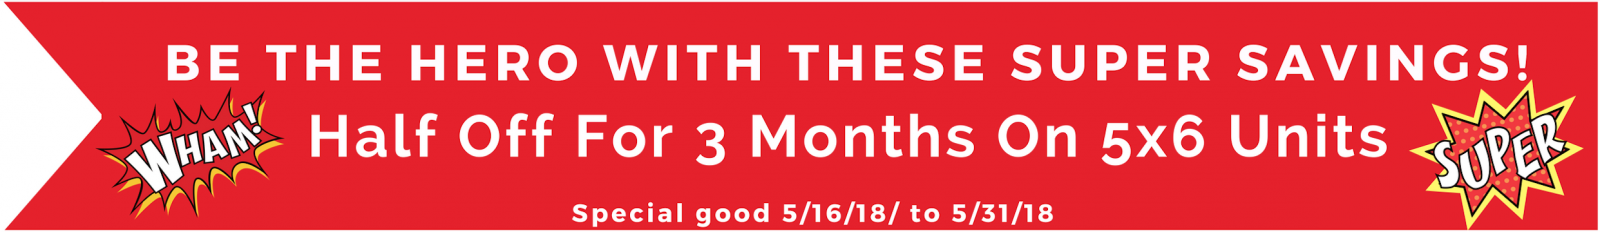 Half off for 3 months on 5x6 Units